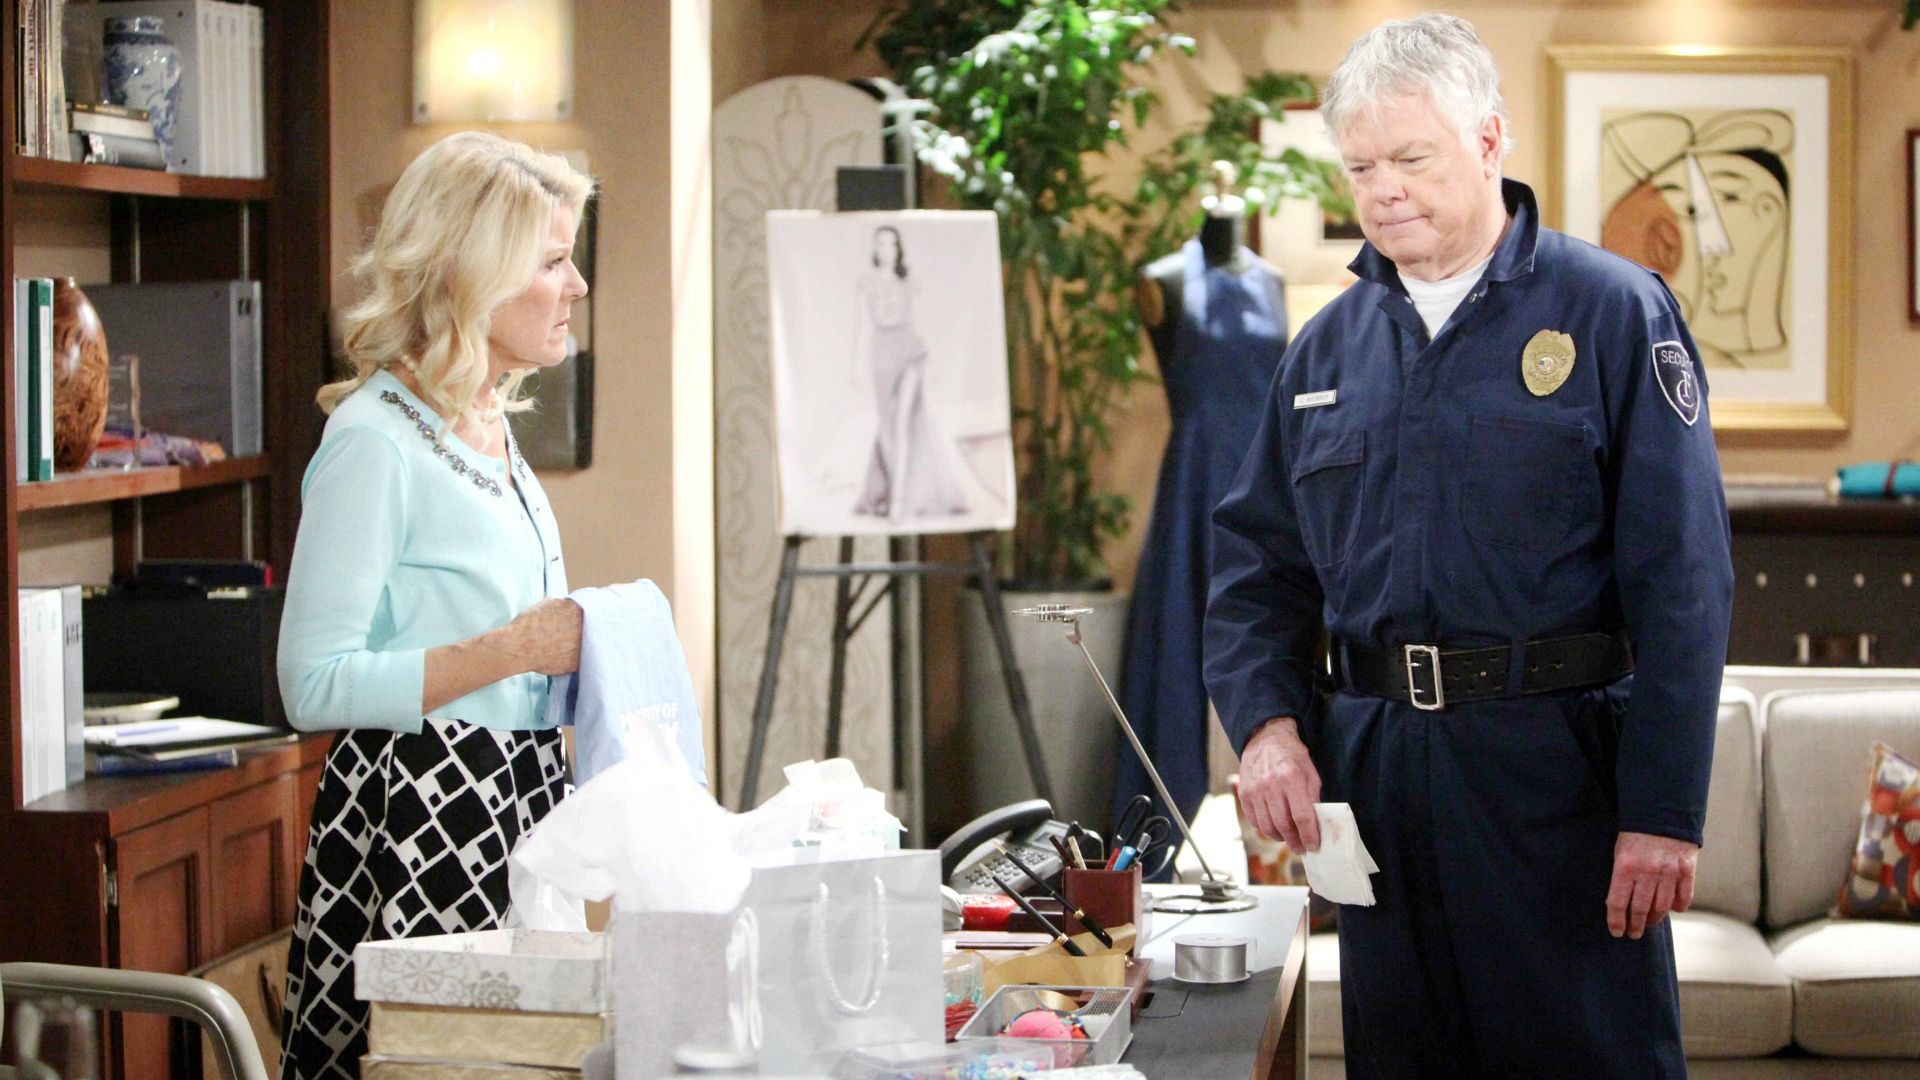 Charlie attempts to convince a disbelieving Pam that something is going on between Ridge and Quinn.